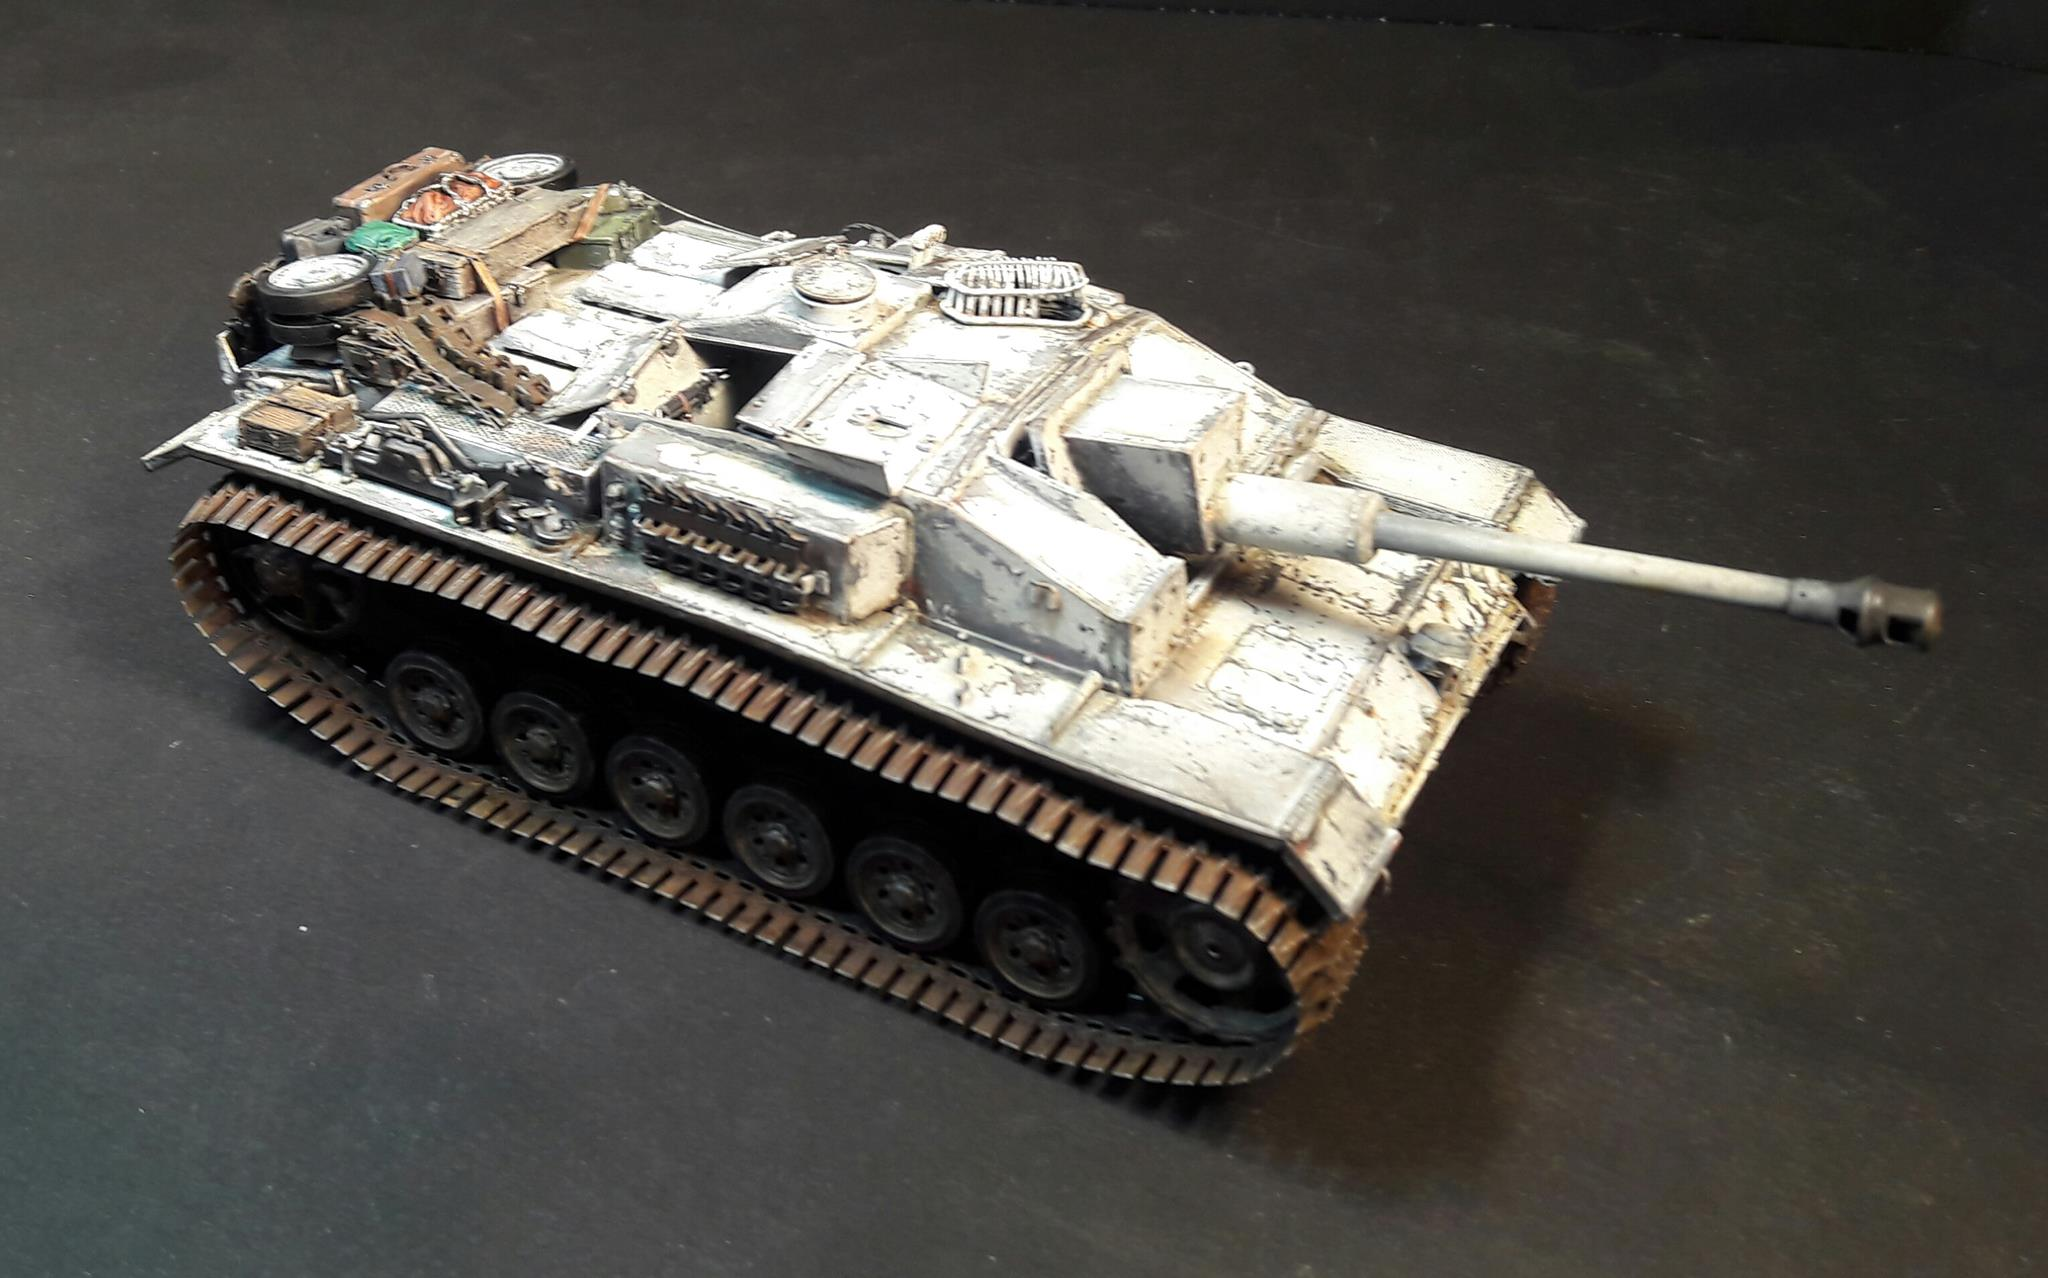 StuG.III Ausf.F/8 late production w/Winterketten - 1/35 - Page 2 5922152088344010212098511512590187624748o